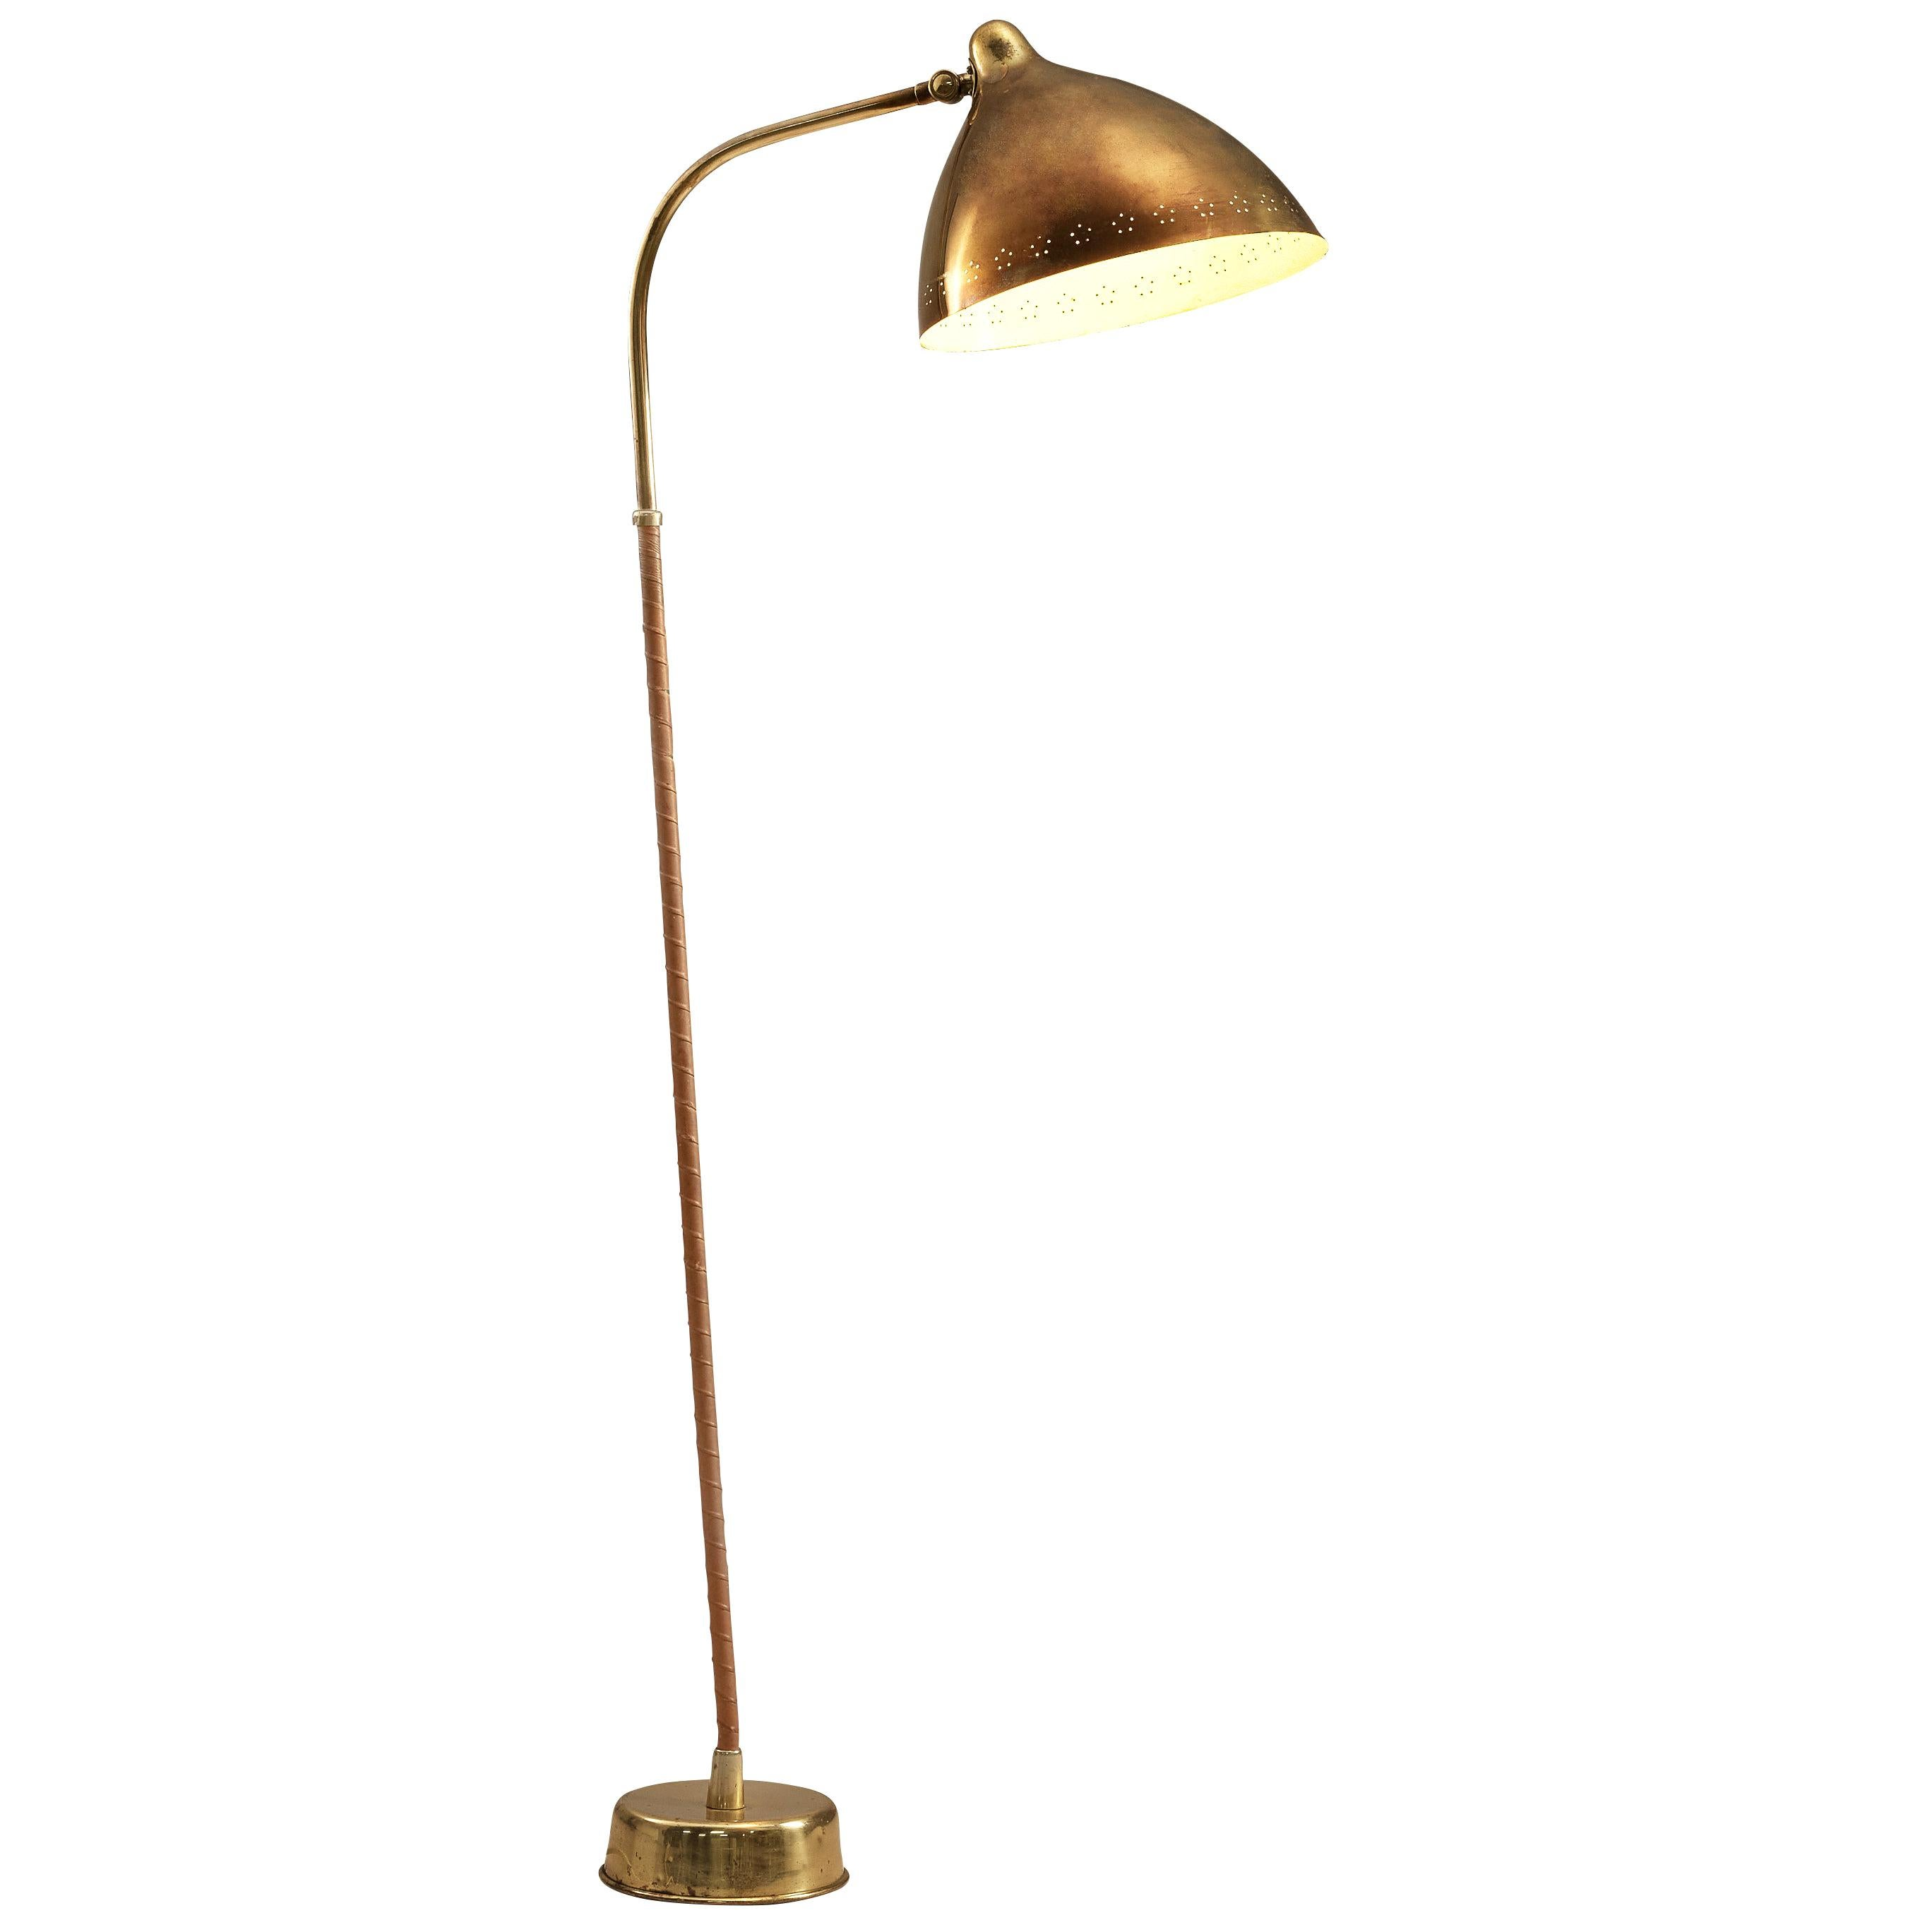 Lisa Johansson-Pape for Orno Floor Lamp in Brass and Leather